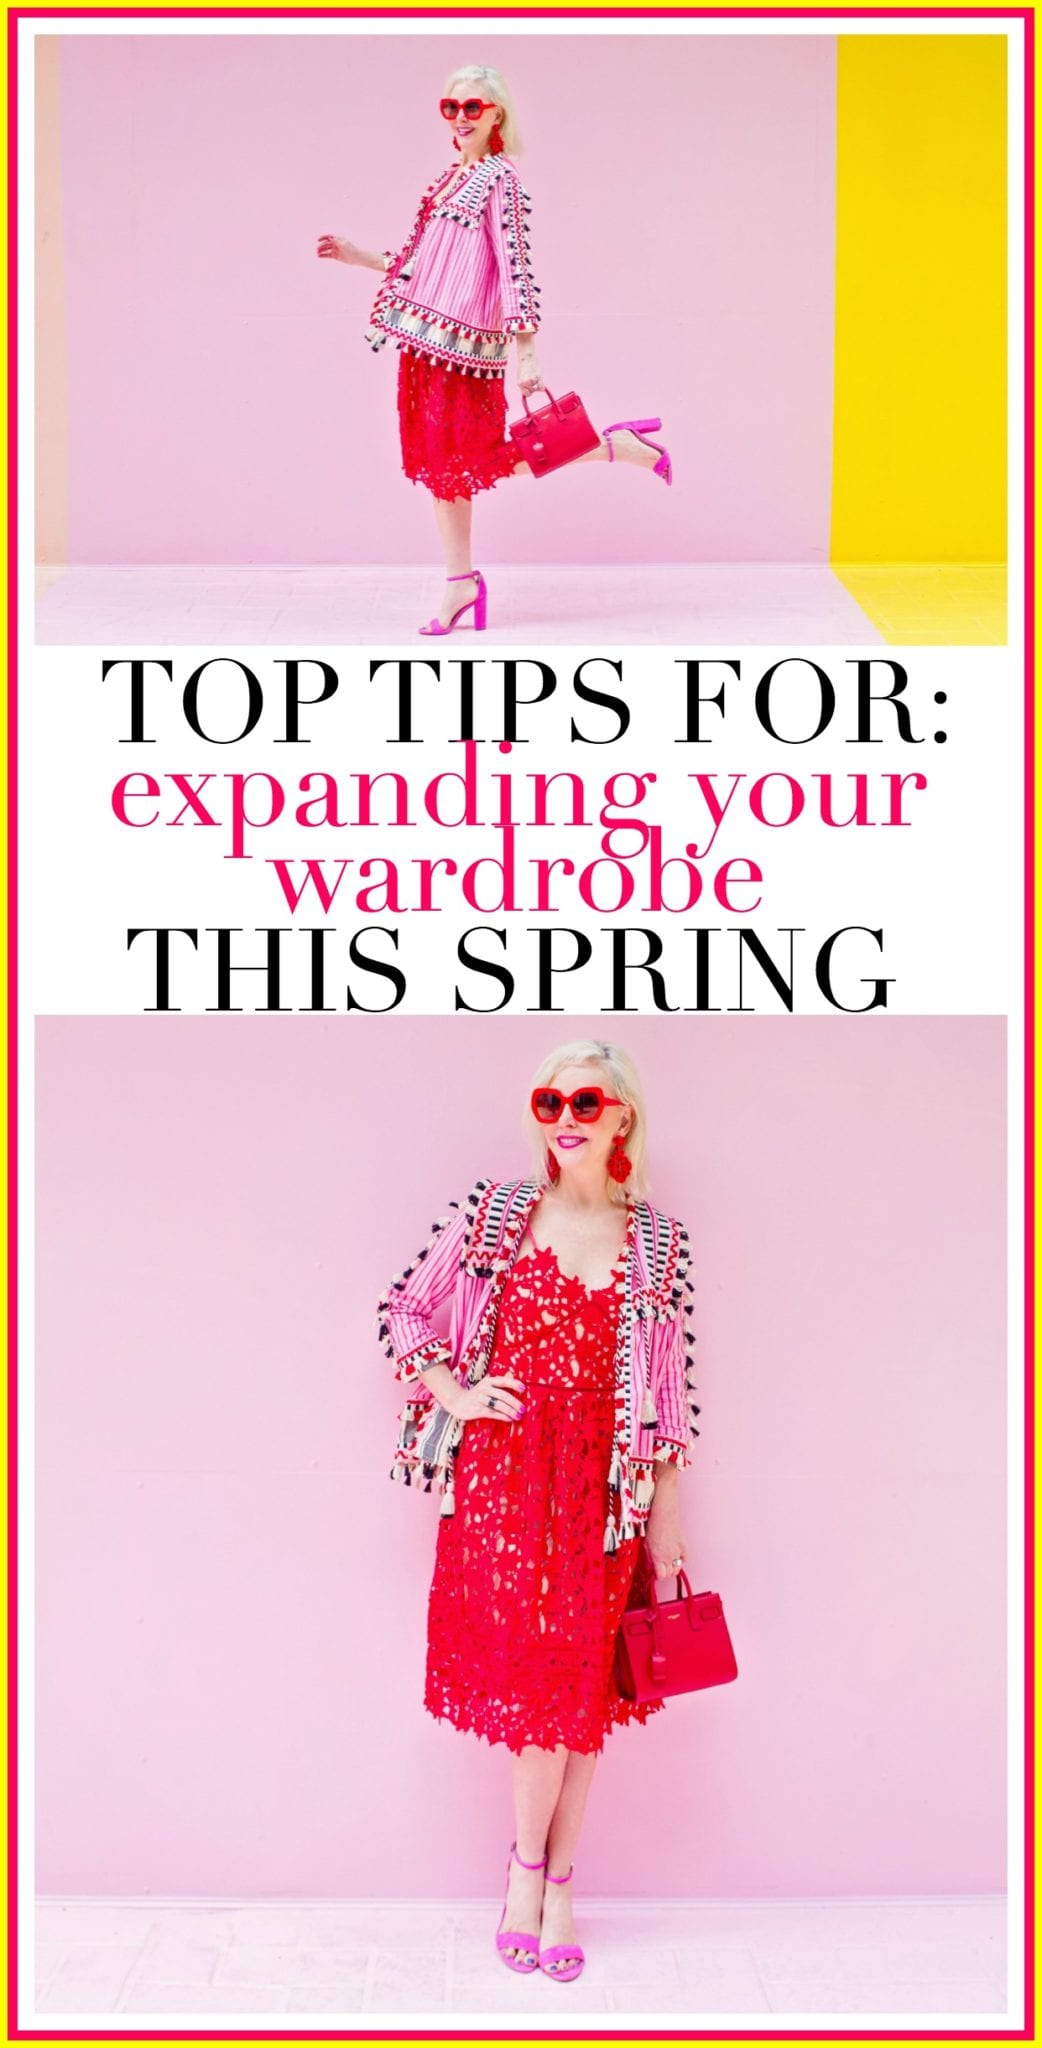 spring dresses, spring outfits, spring dress trends, spring clothing trends, expanding your wardrobe, expanding your closet